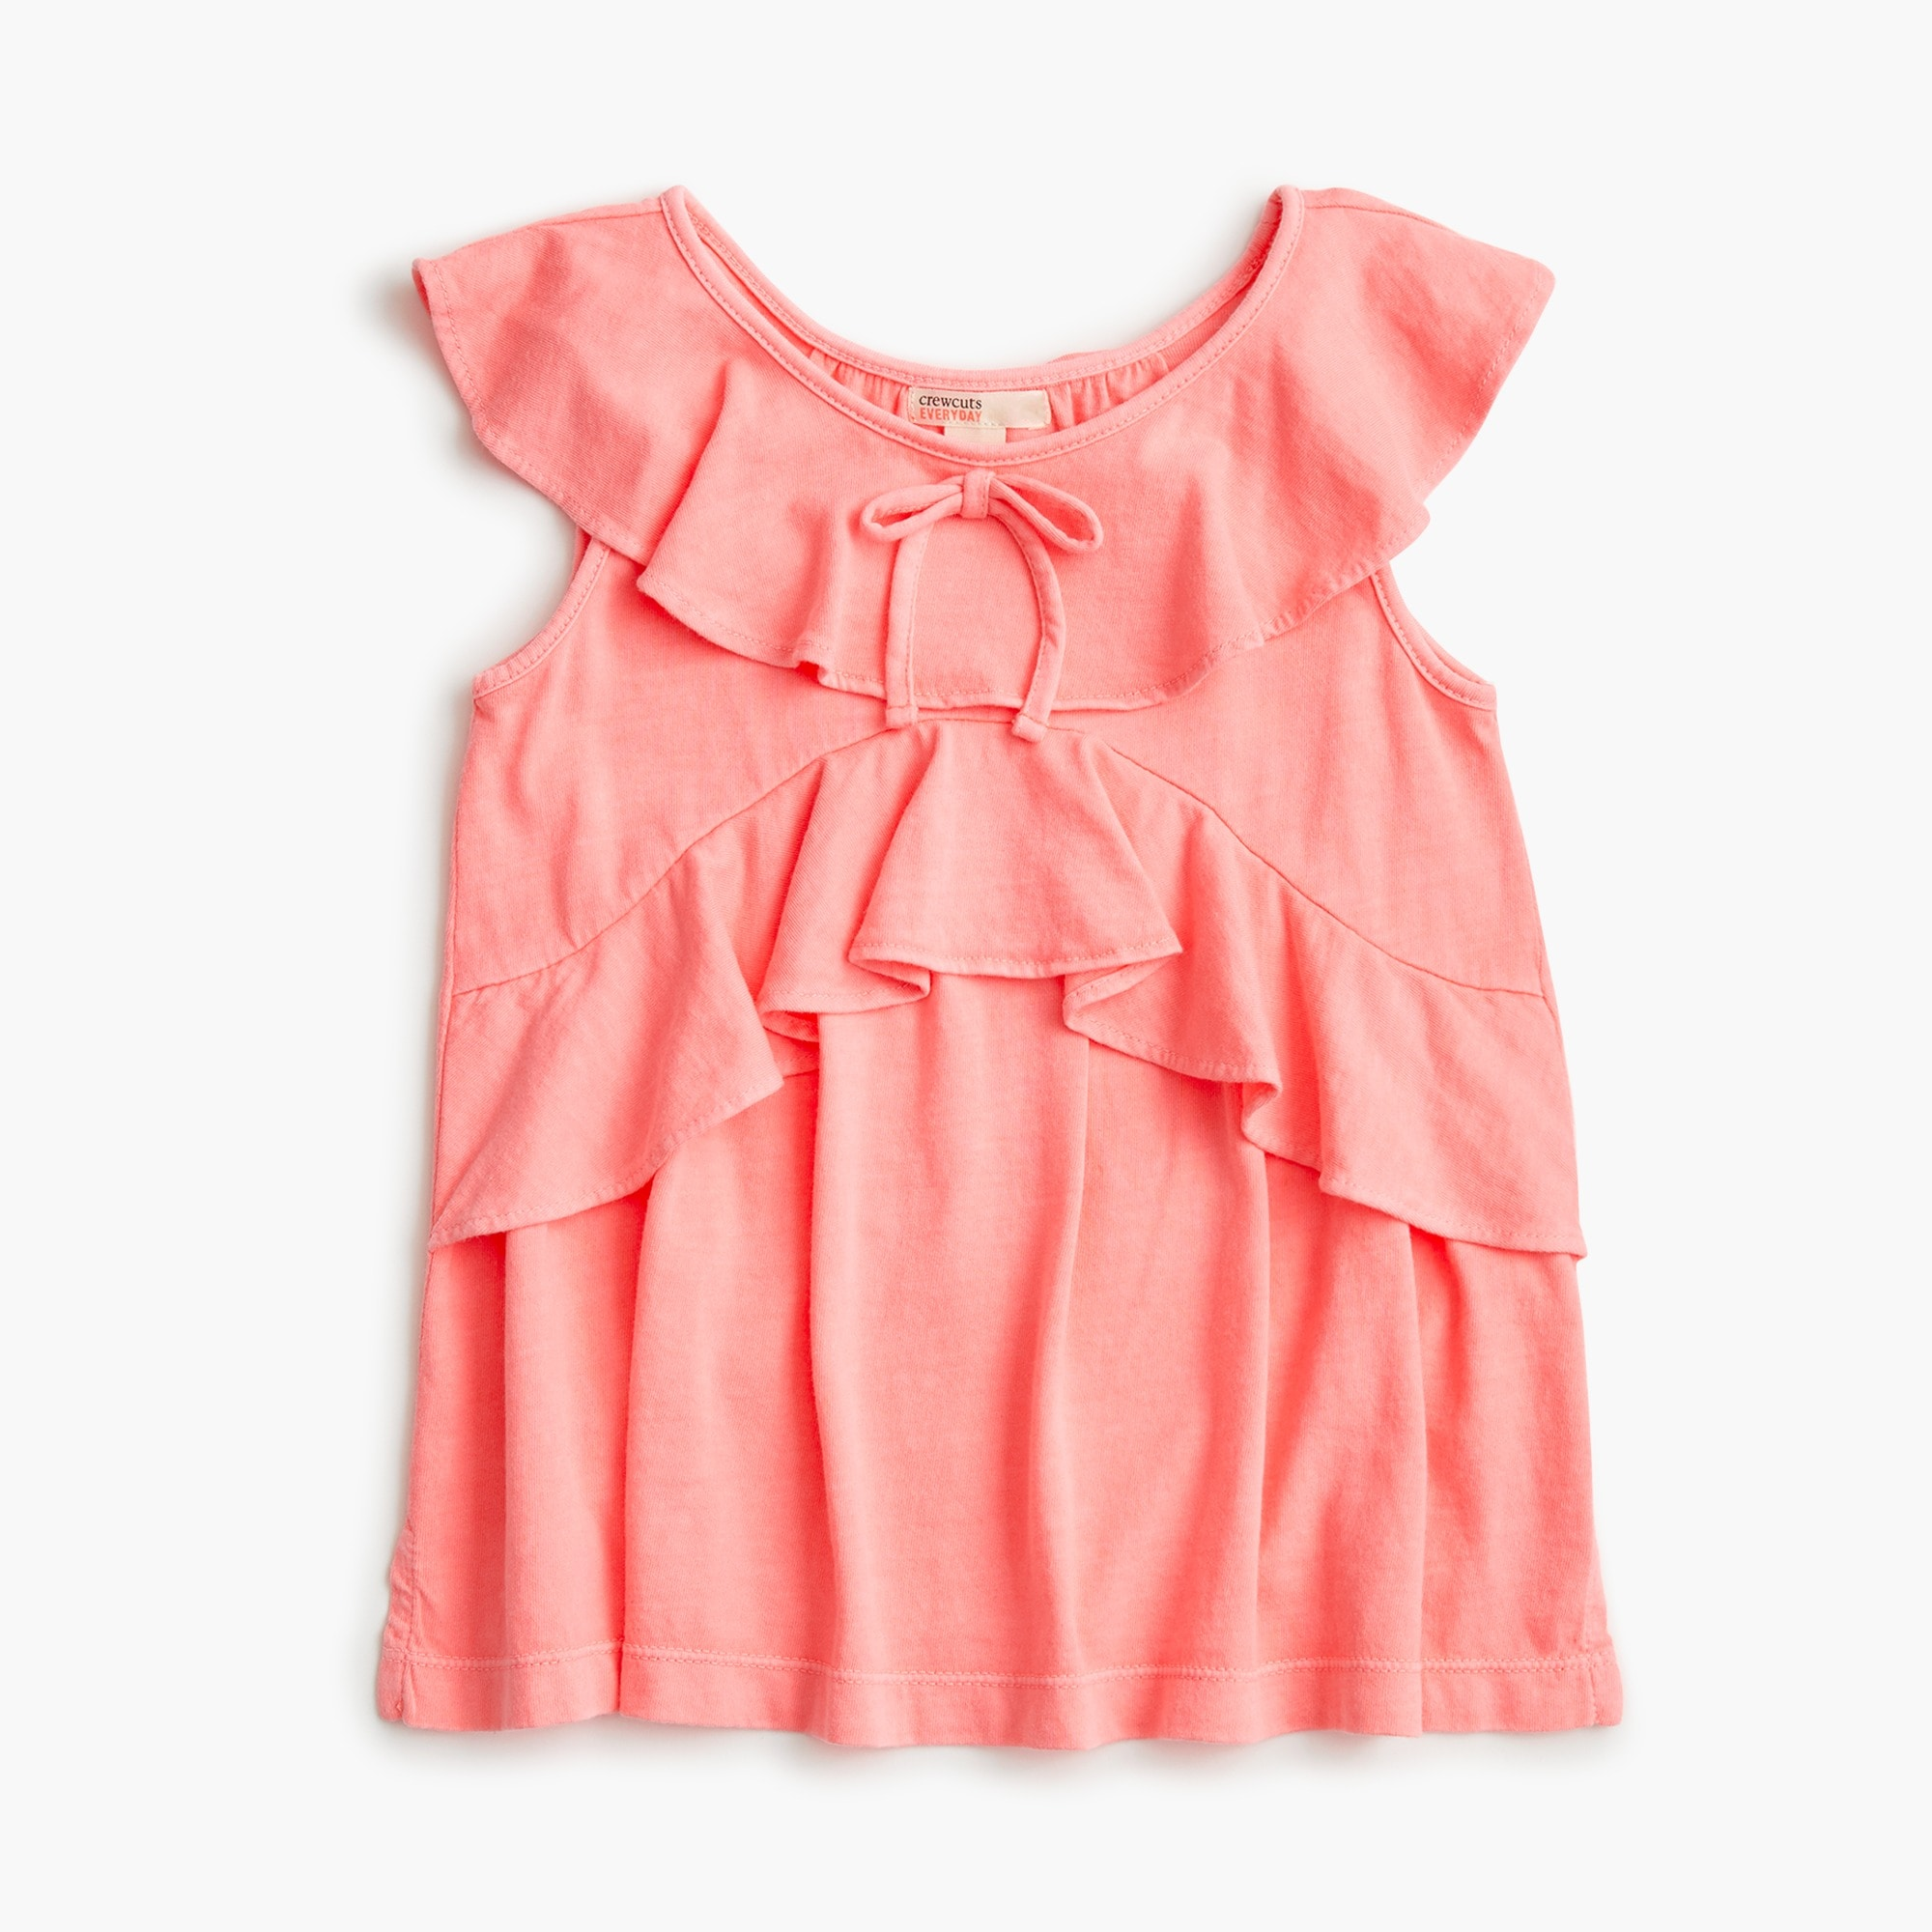 girls Girls' ruffle-trimmed top